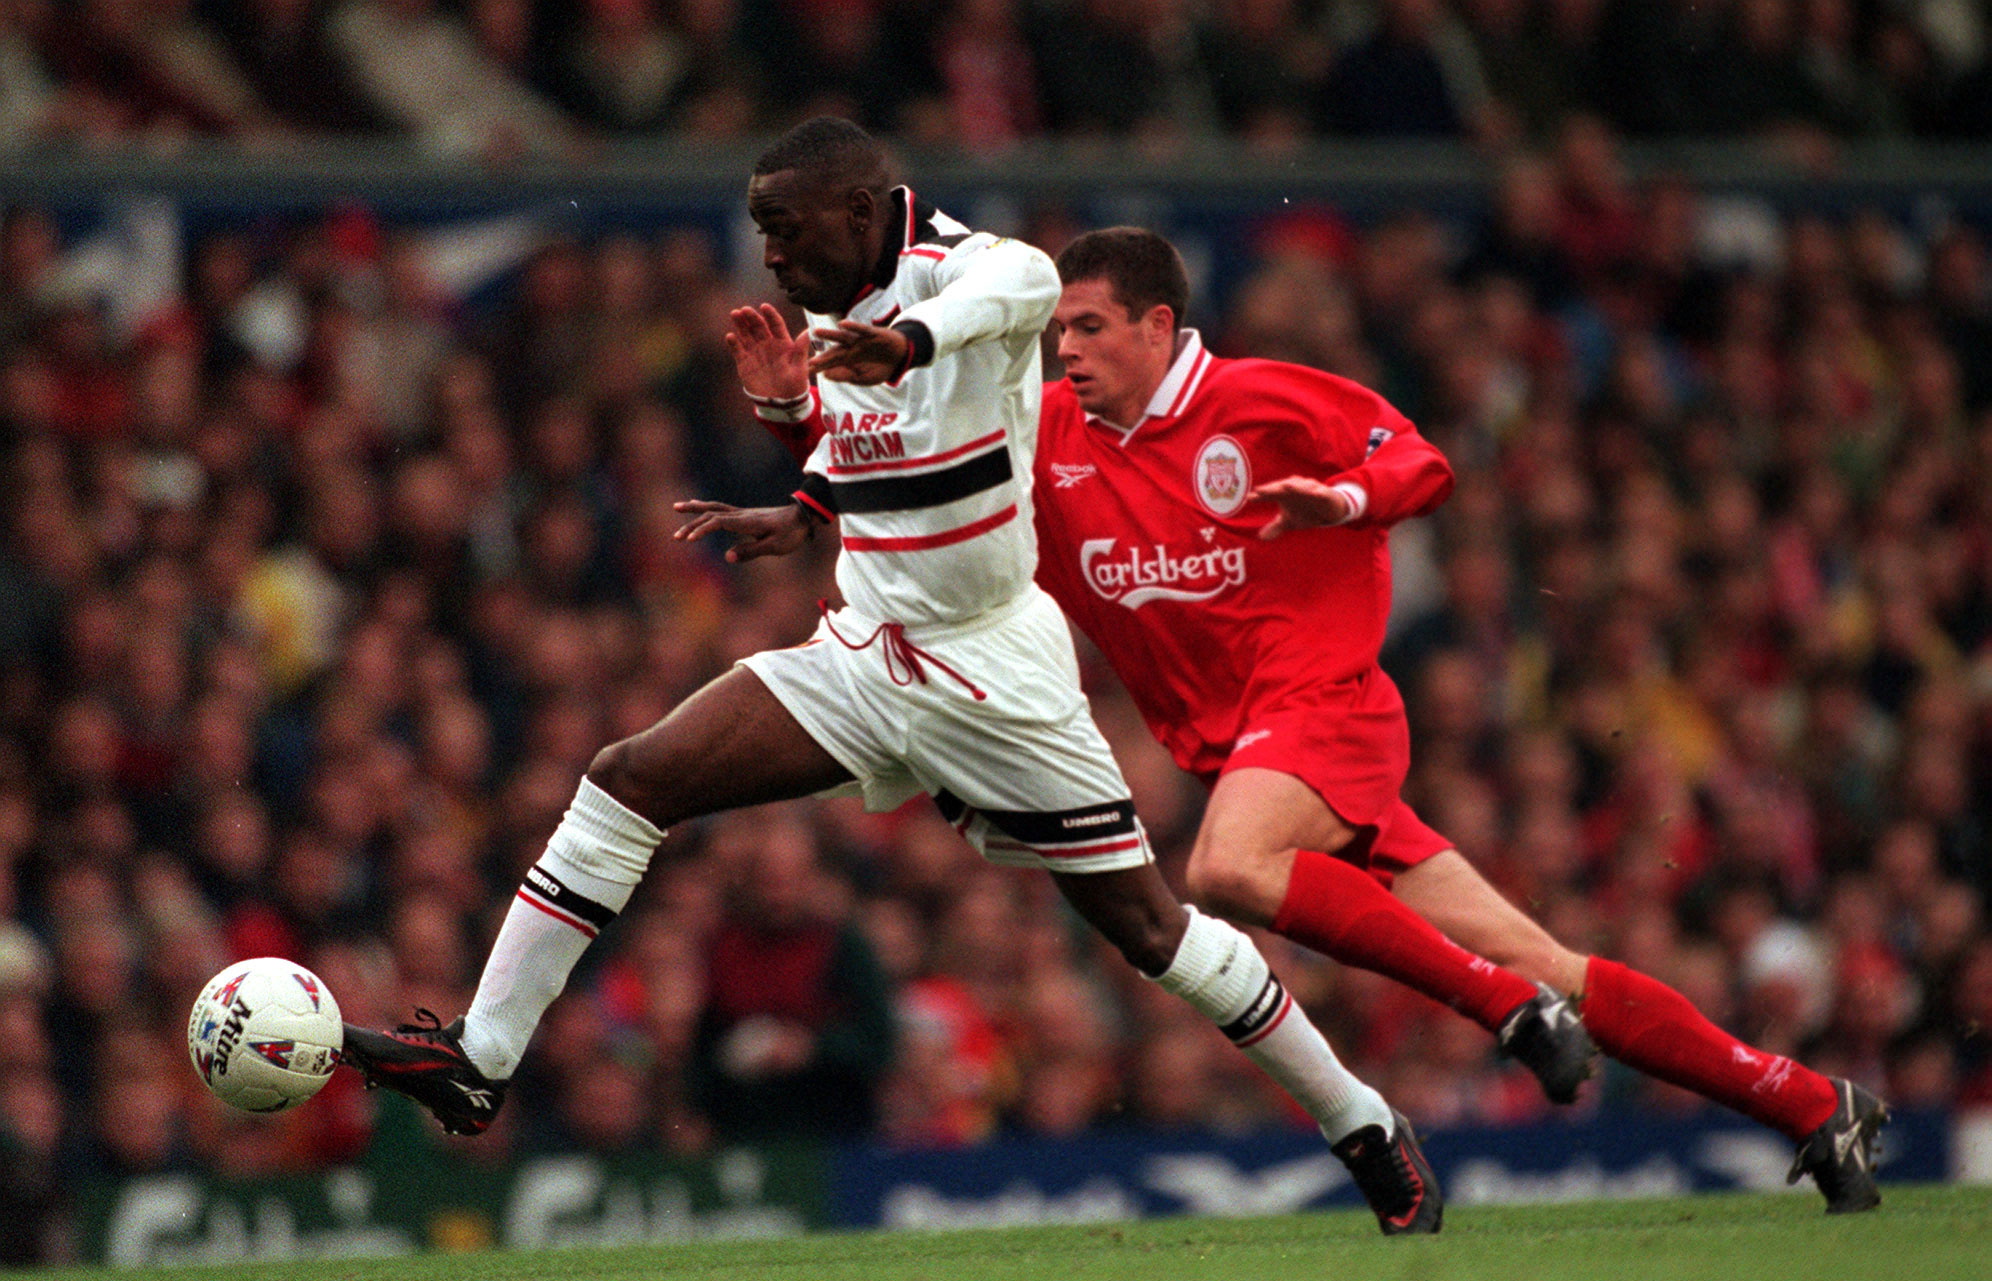 The Liverpool FCManchester United FC rivalry also known as the North West Derby is a highprofile intercity rivalry between English professional association